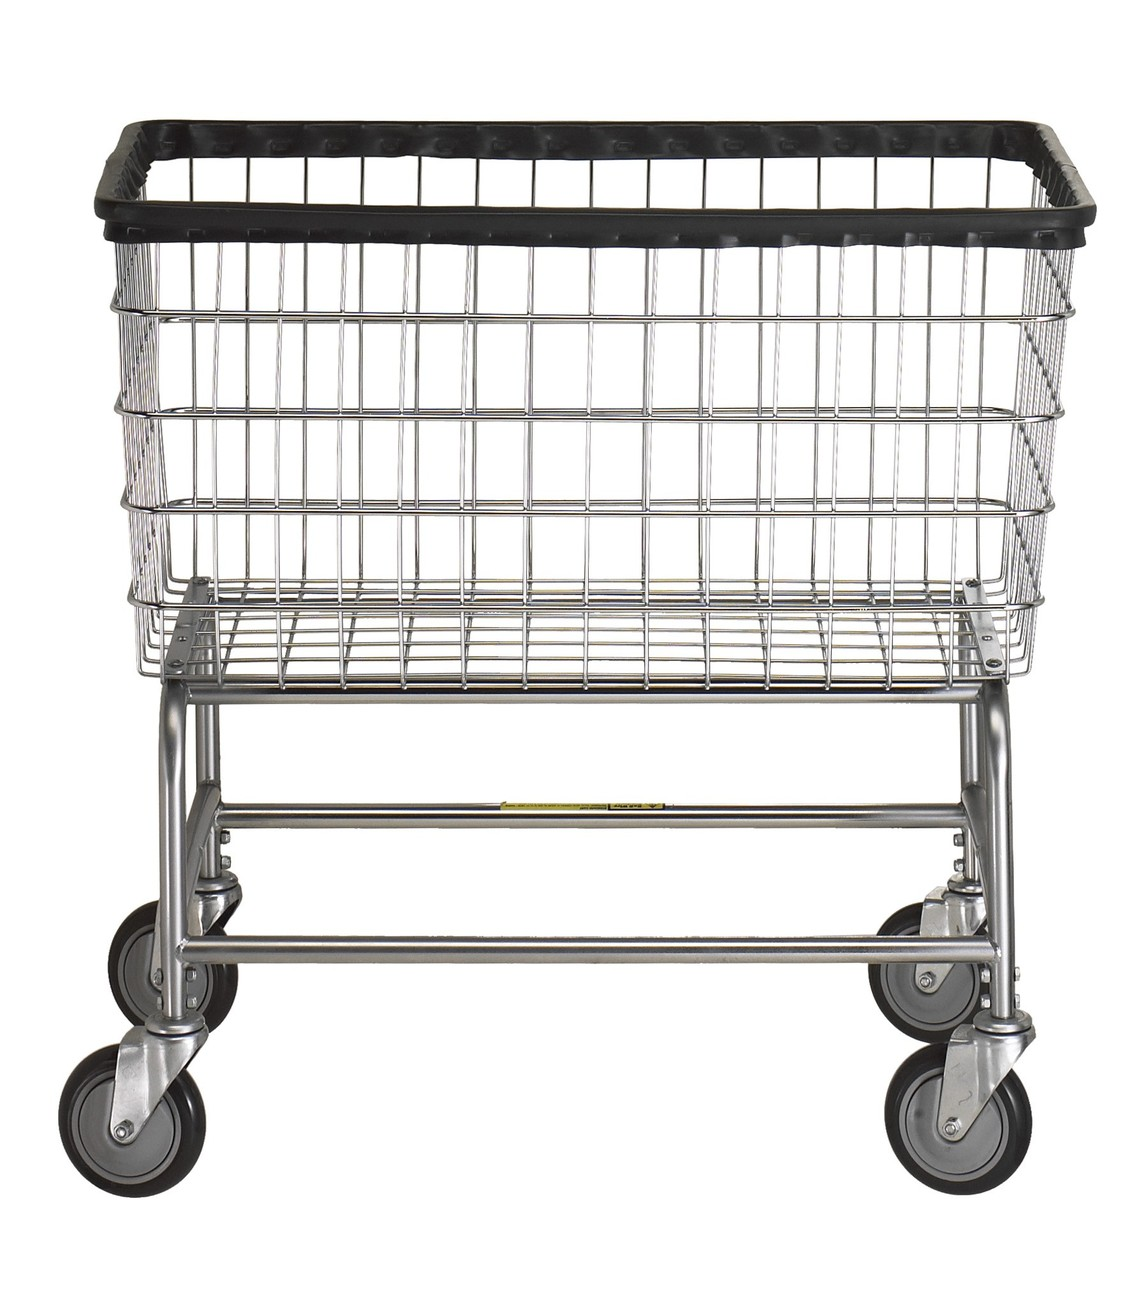 Large Capacity Laundry Cart Model Number 200F